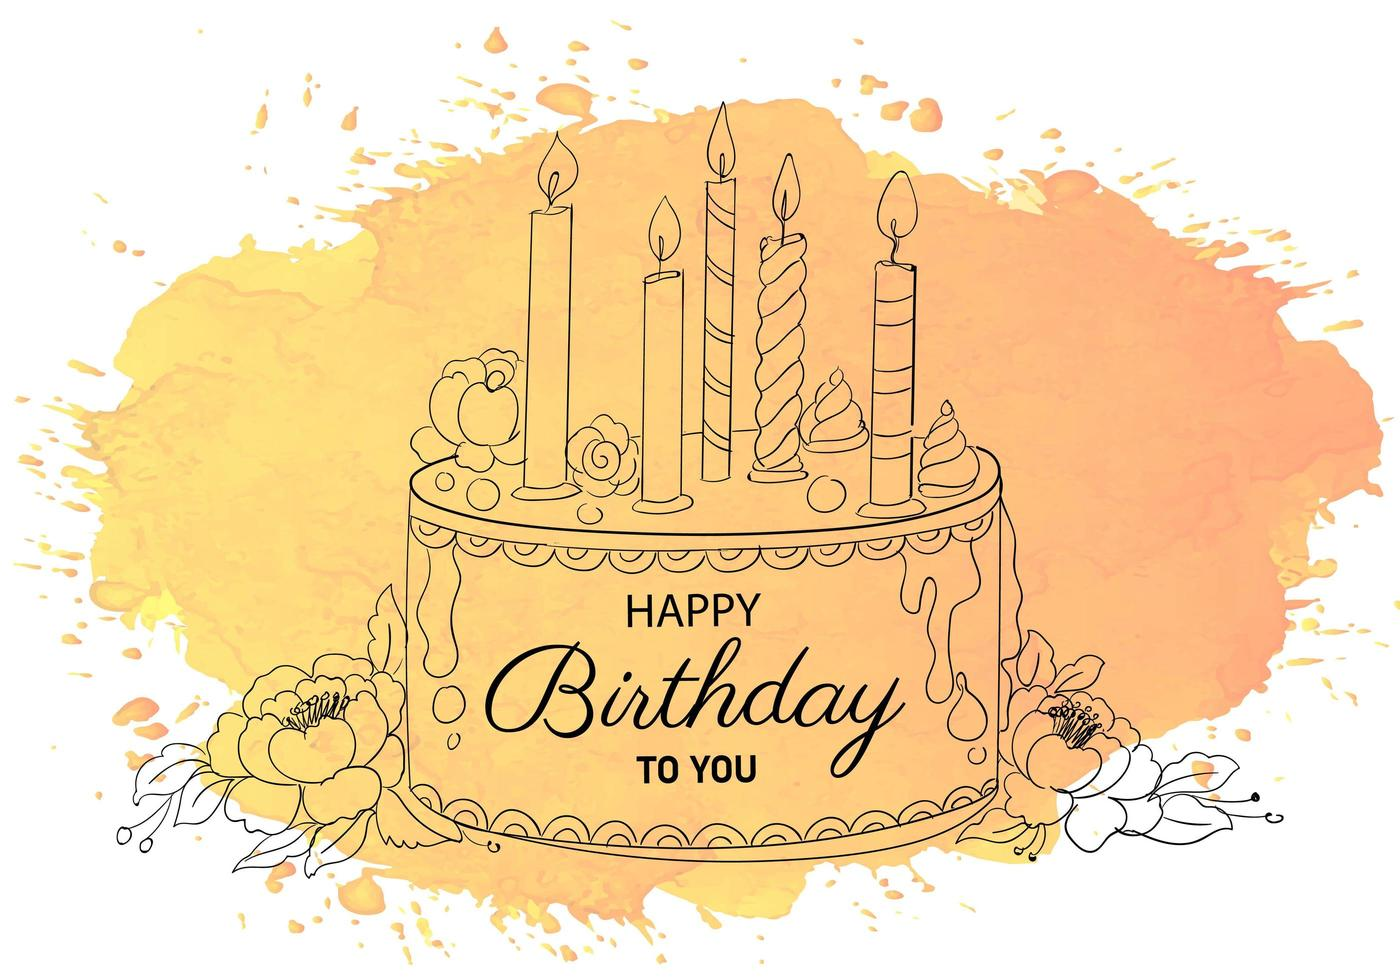 Happy Birthday Decorative Cake with Candles Sketch vector